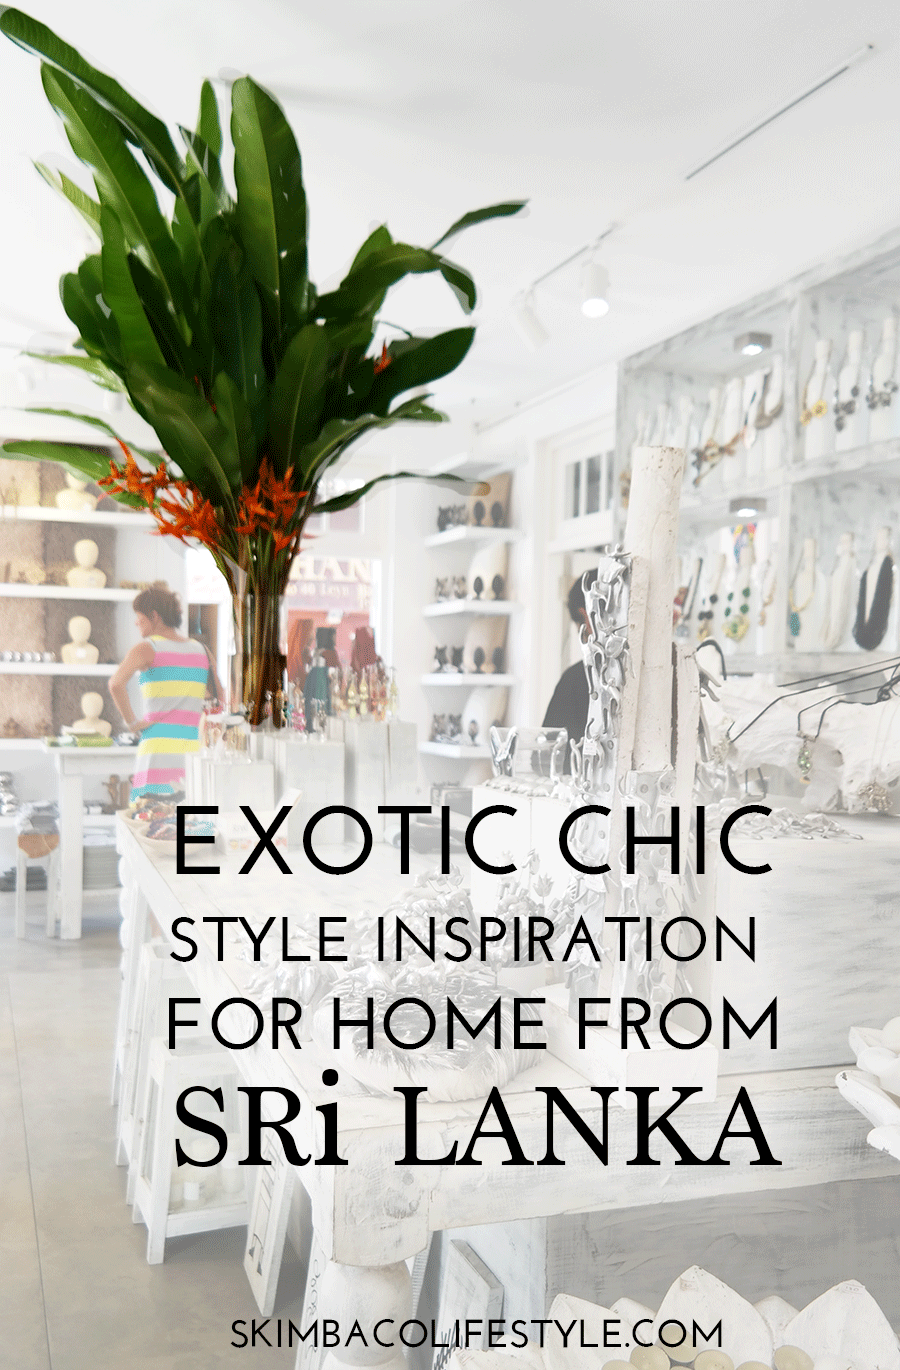 https://s23188.pcdn.co/wp-content/uploads/2015/01/EXOTIC-chic-home-decorating-inspiration-from-sri-lanka.png